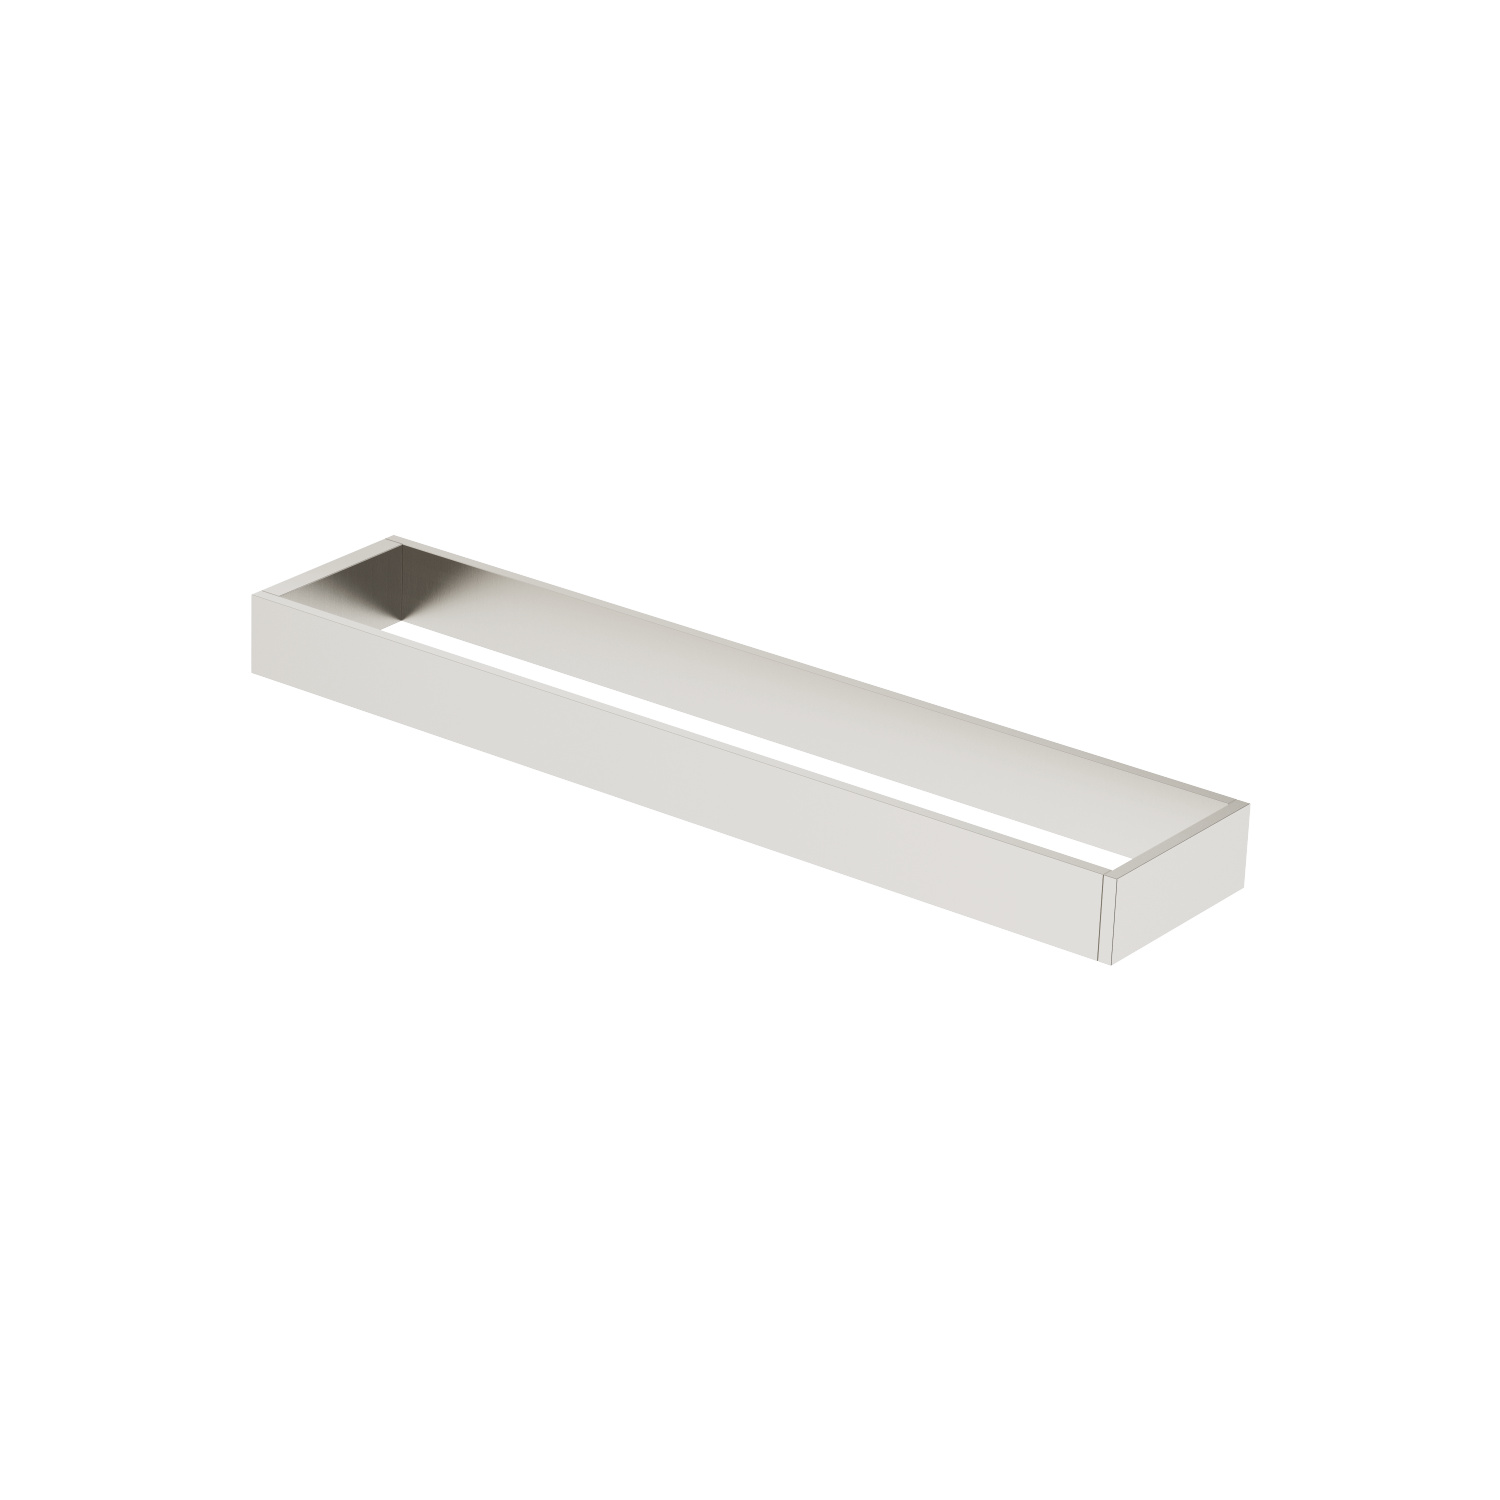 Towel bar in two parts non-swivel - platinum matt